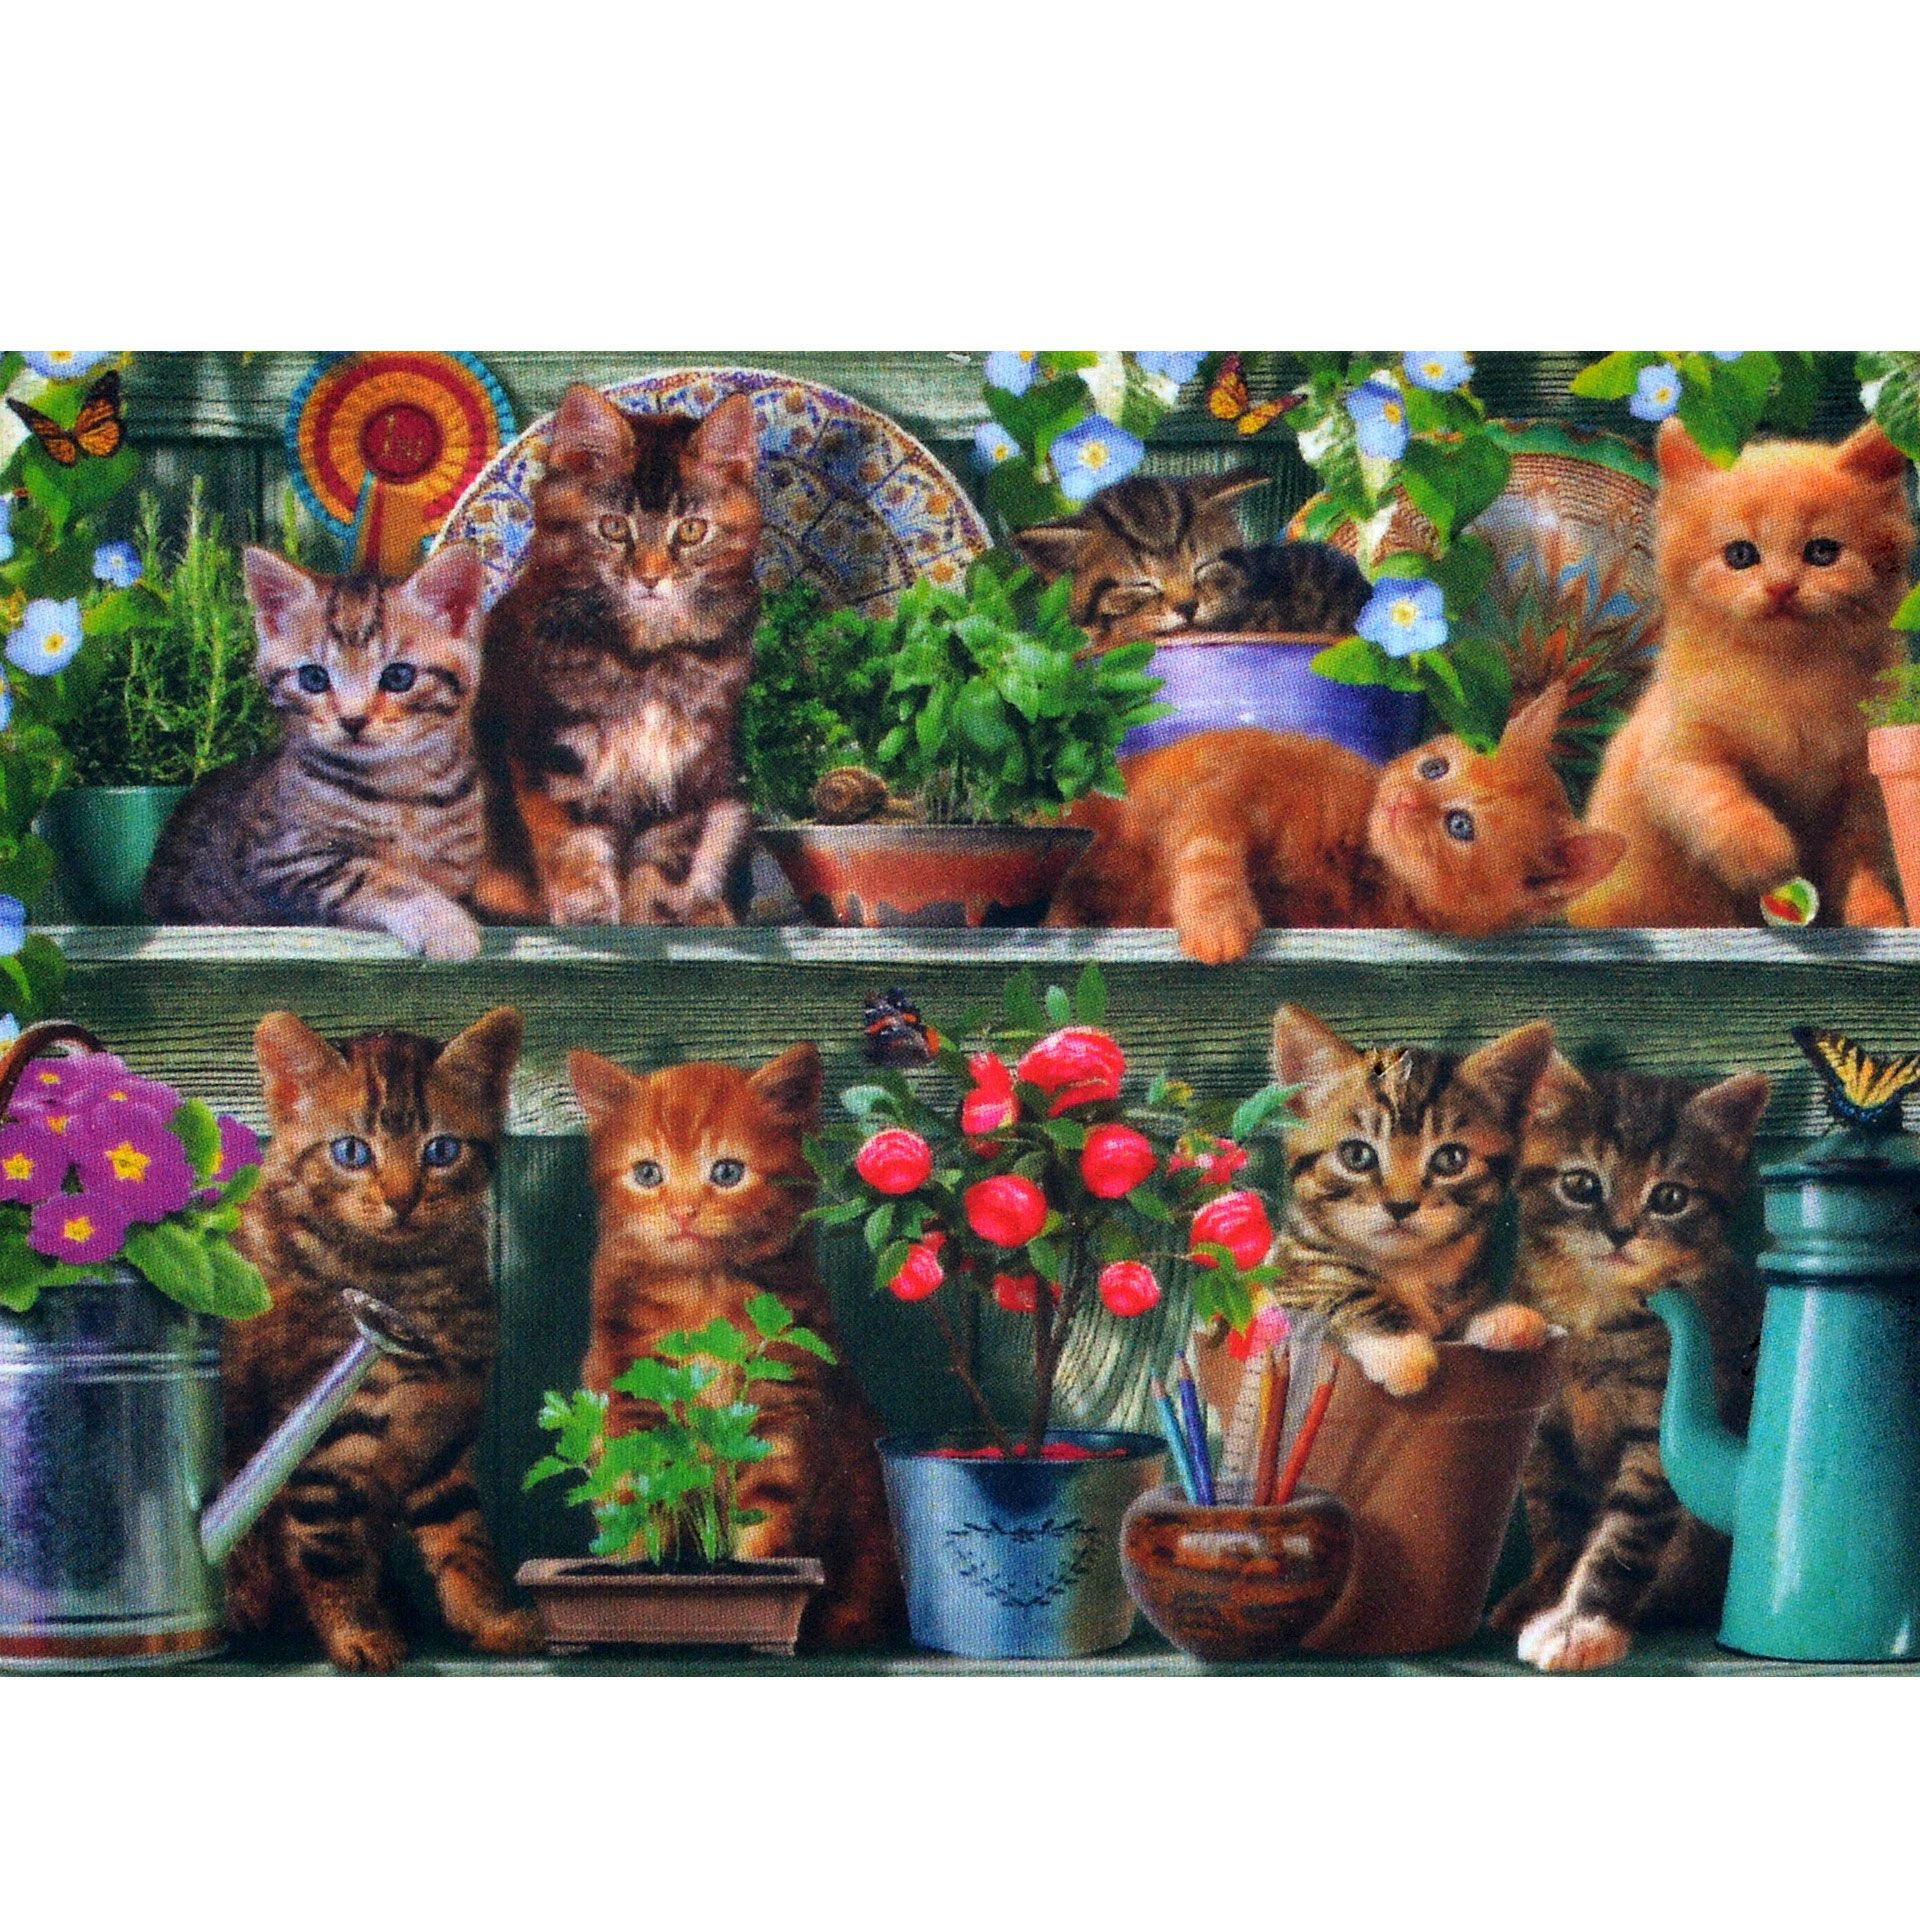 Pzel Hudozhestven Wentworth Kitchen Cats 40 Chasti Hobi Art Wentworth Wooden Puzzles Cat Painting Cat Art Print